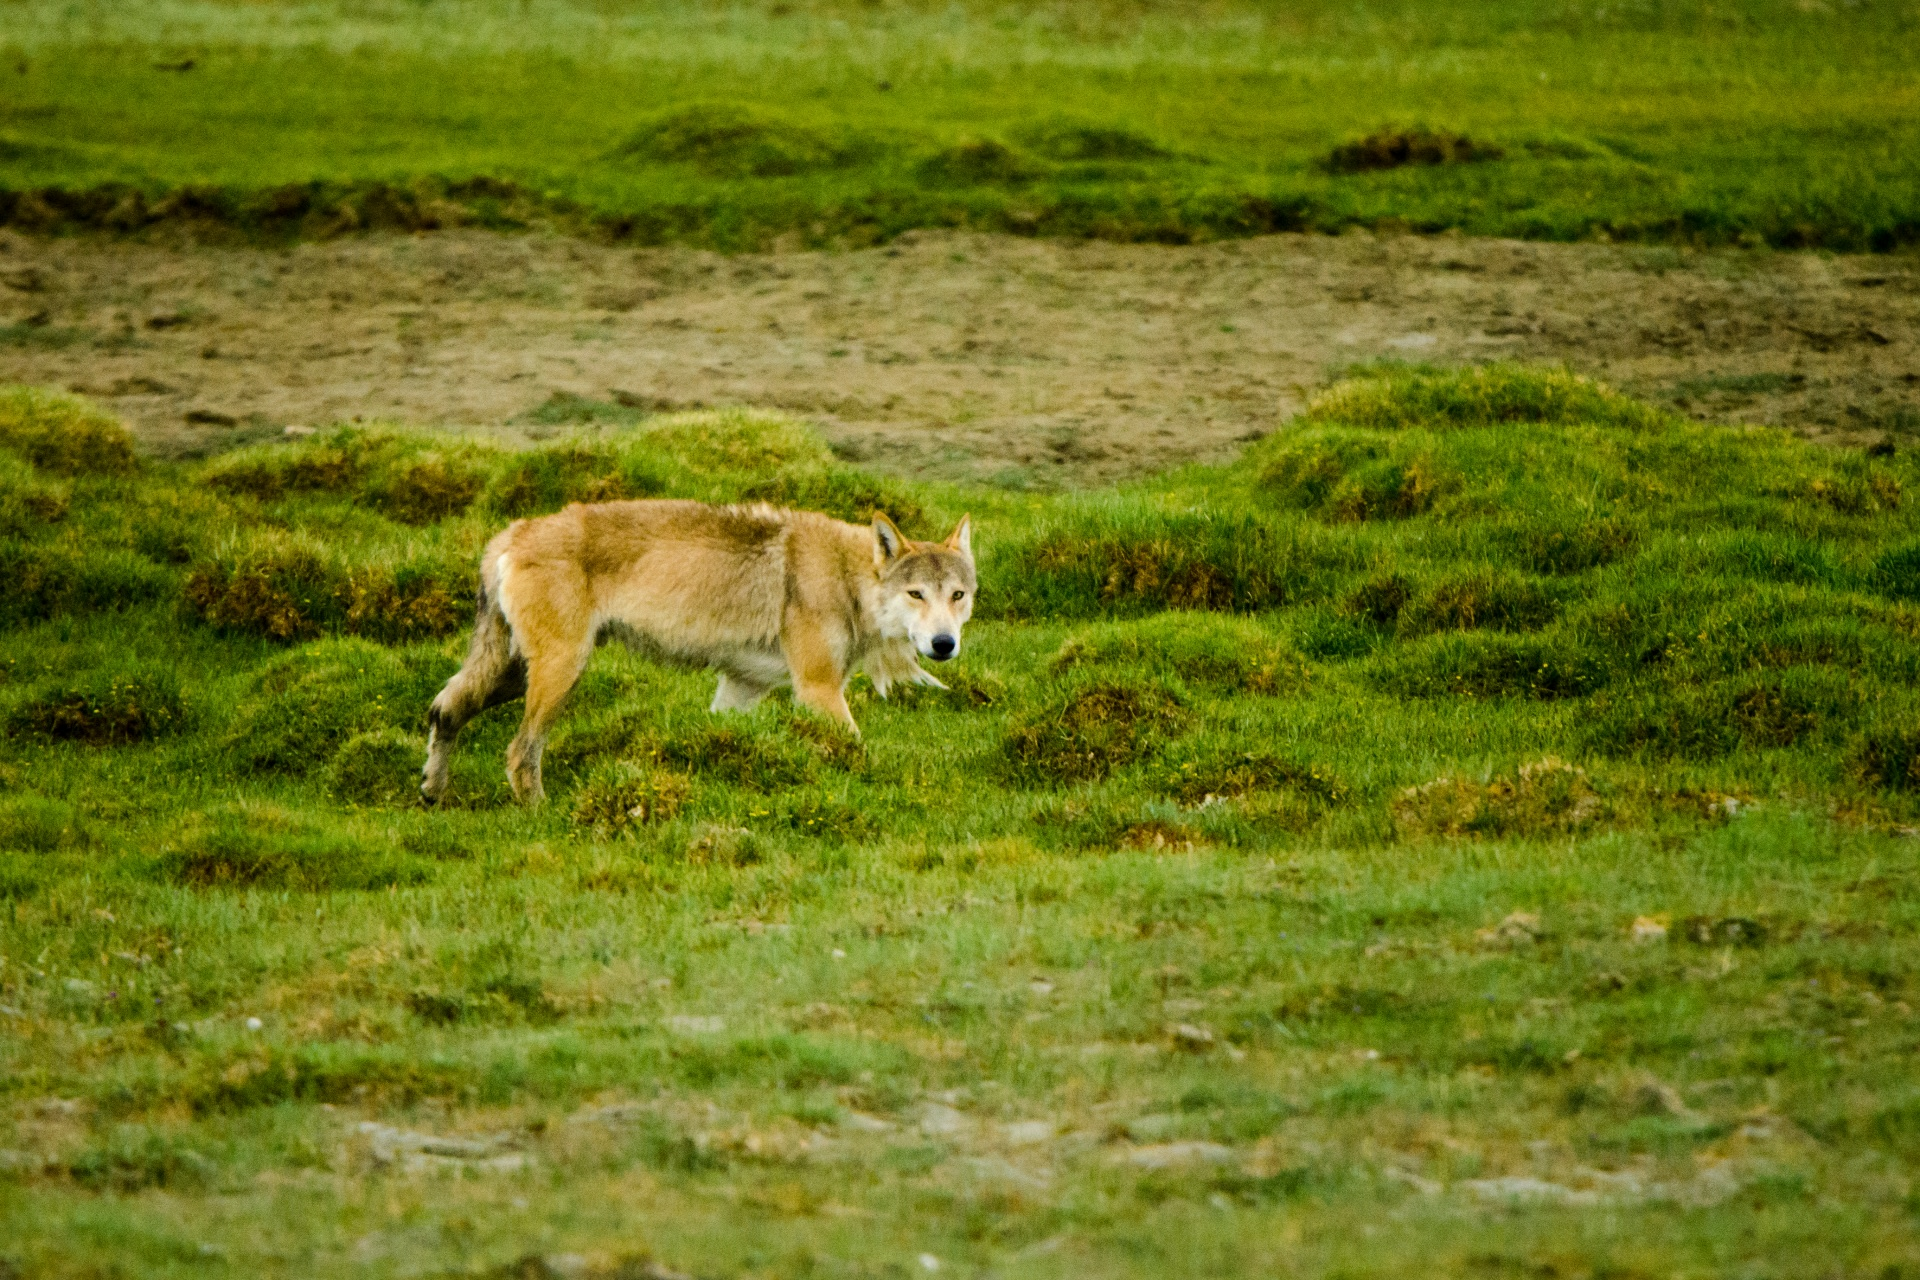 A Tibetan wolf curiously inspects the human presence in its territory. Known interchangeably as Tibetan or Himalayan wolves, these genetically-unique wolves await formal classification. Photo: Saurabh Sawant